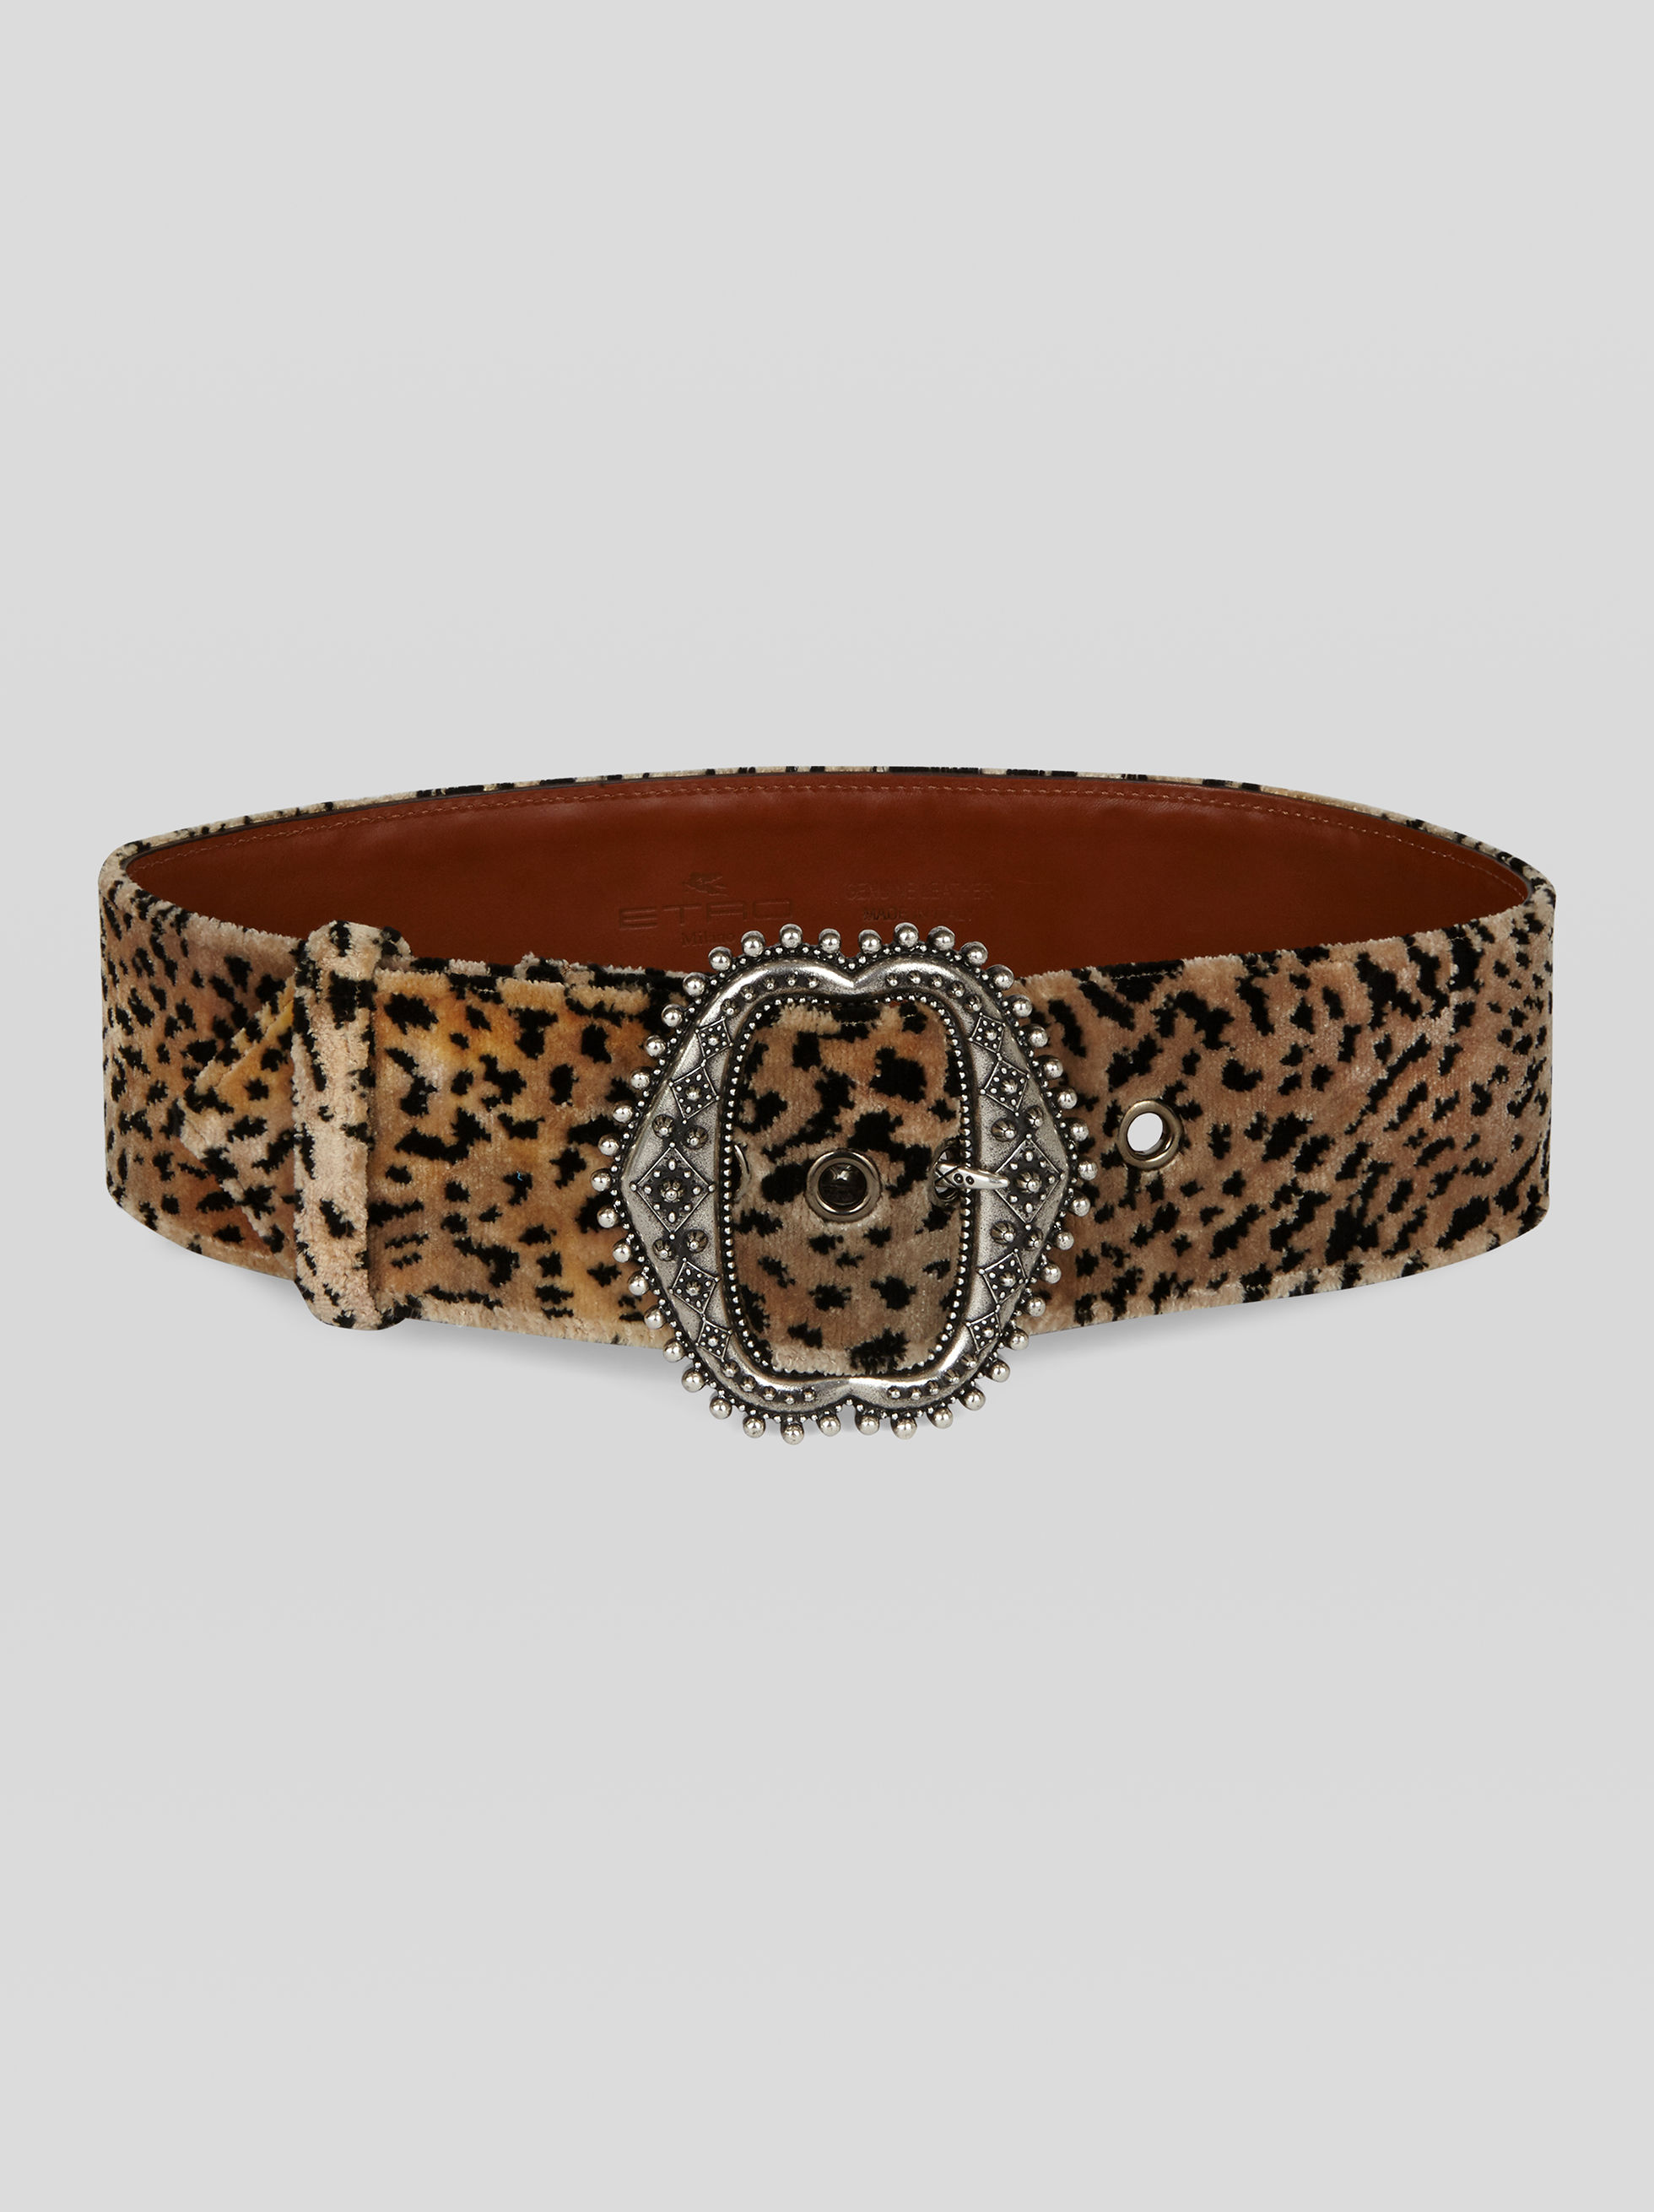 CEINTURE EN VELOURS IMPRIMÉ ANIMAL